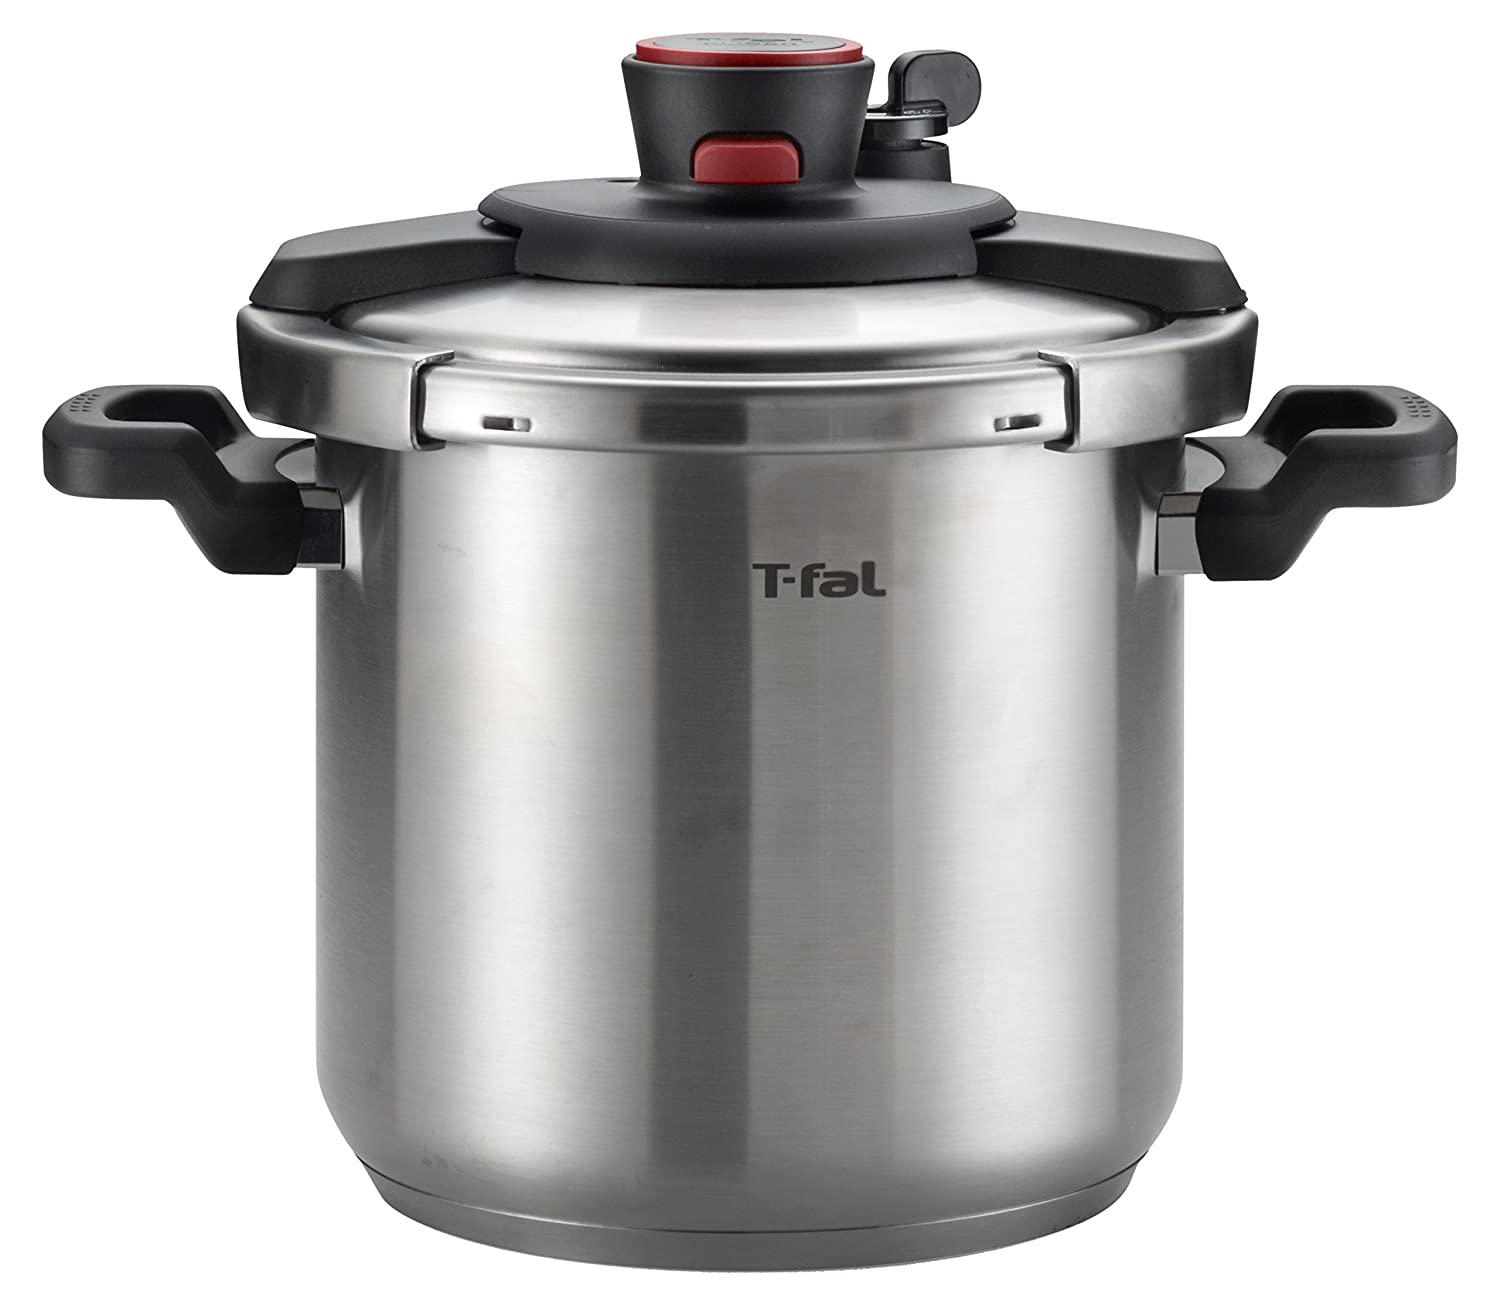 T-fal P45009 Clipso Stainless Steel Dishwasher Safe PTFE PFOA and Cadmium Free 12-PSI Pressure Cooker Cookware, 8-Quart, Silver